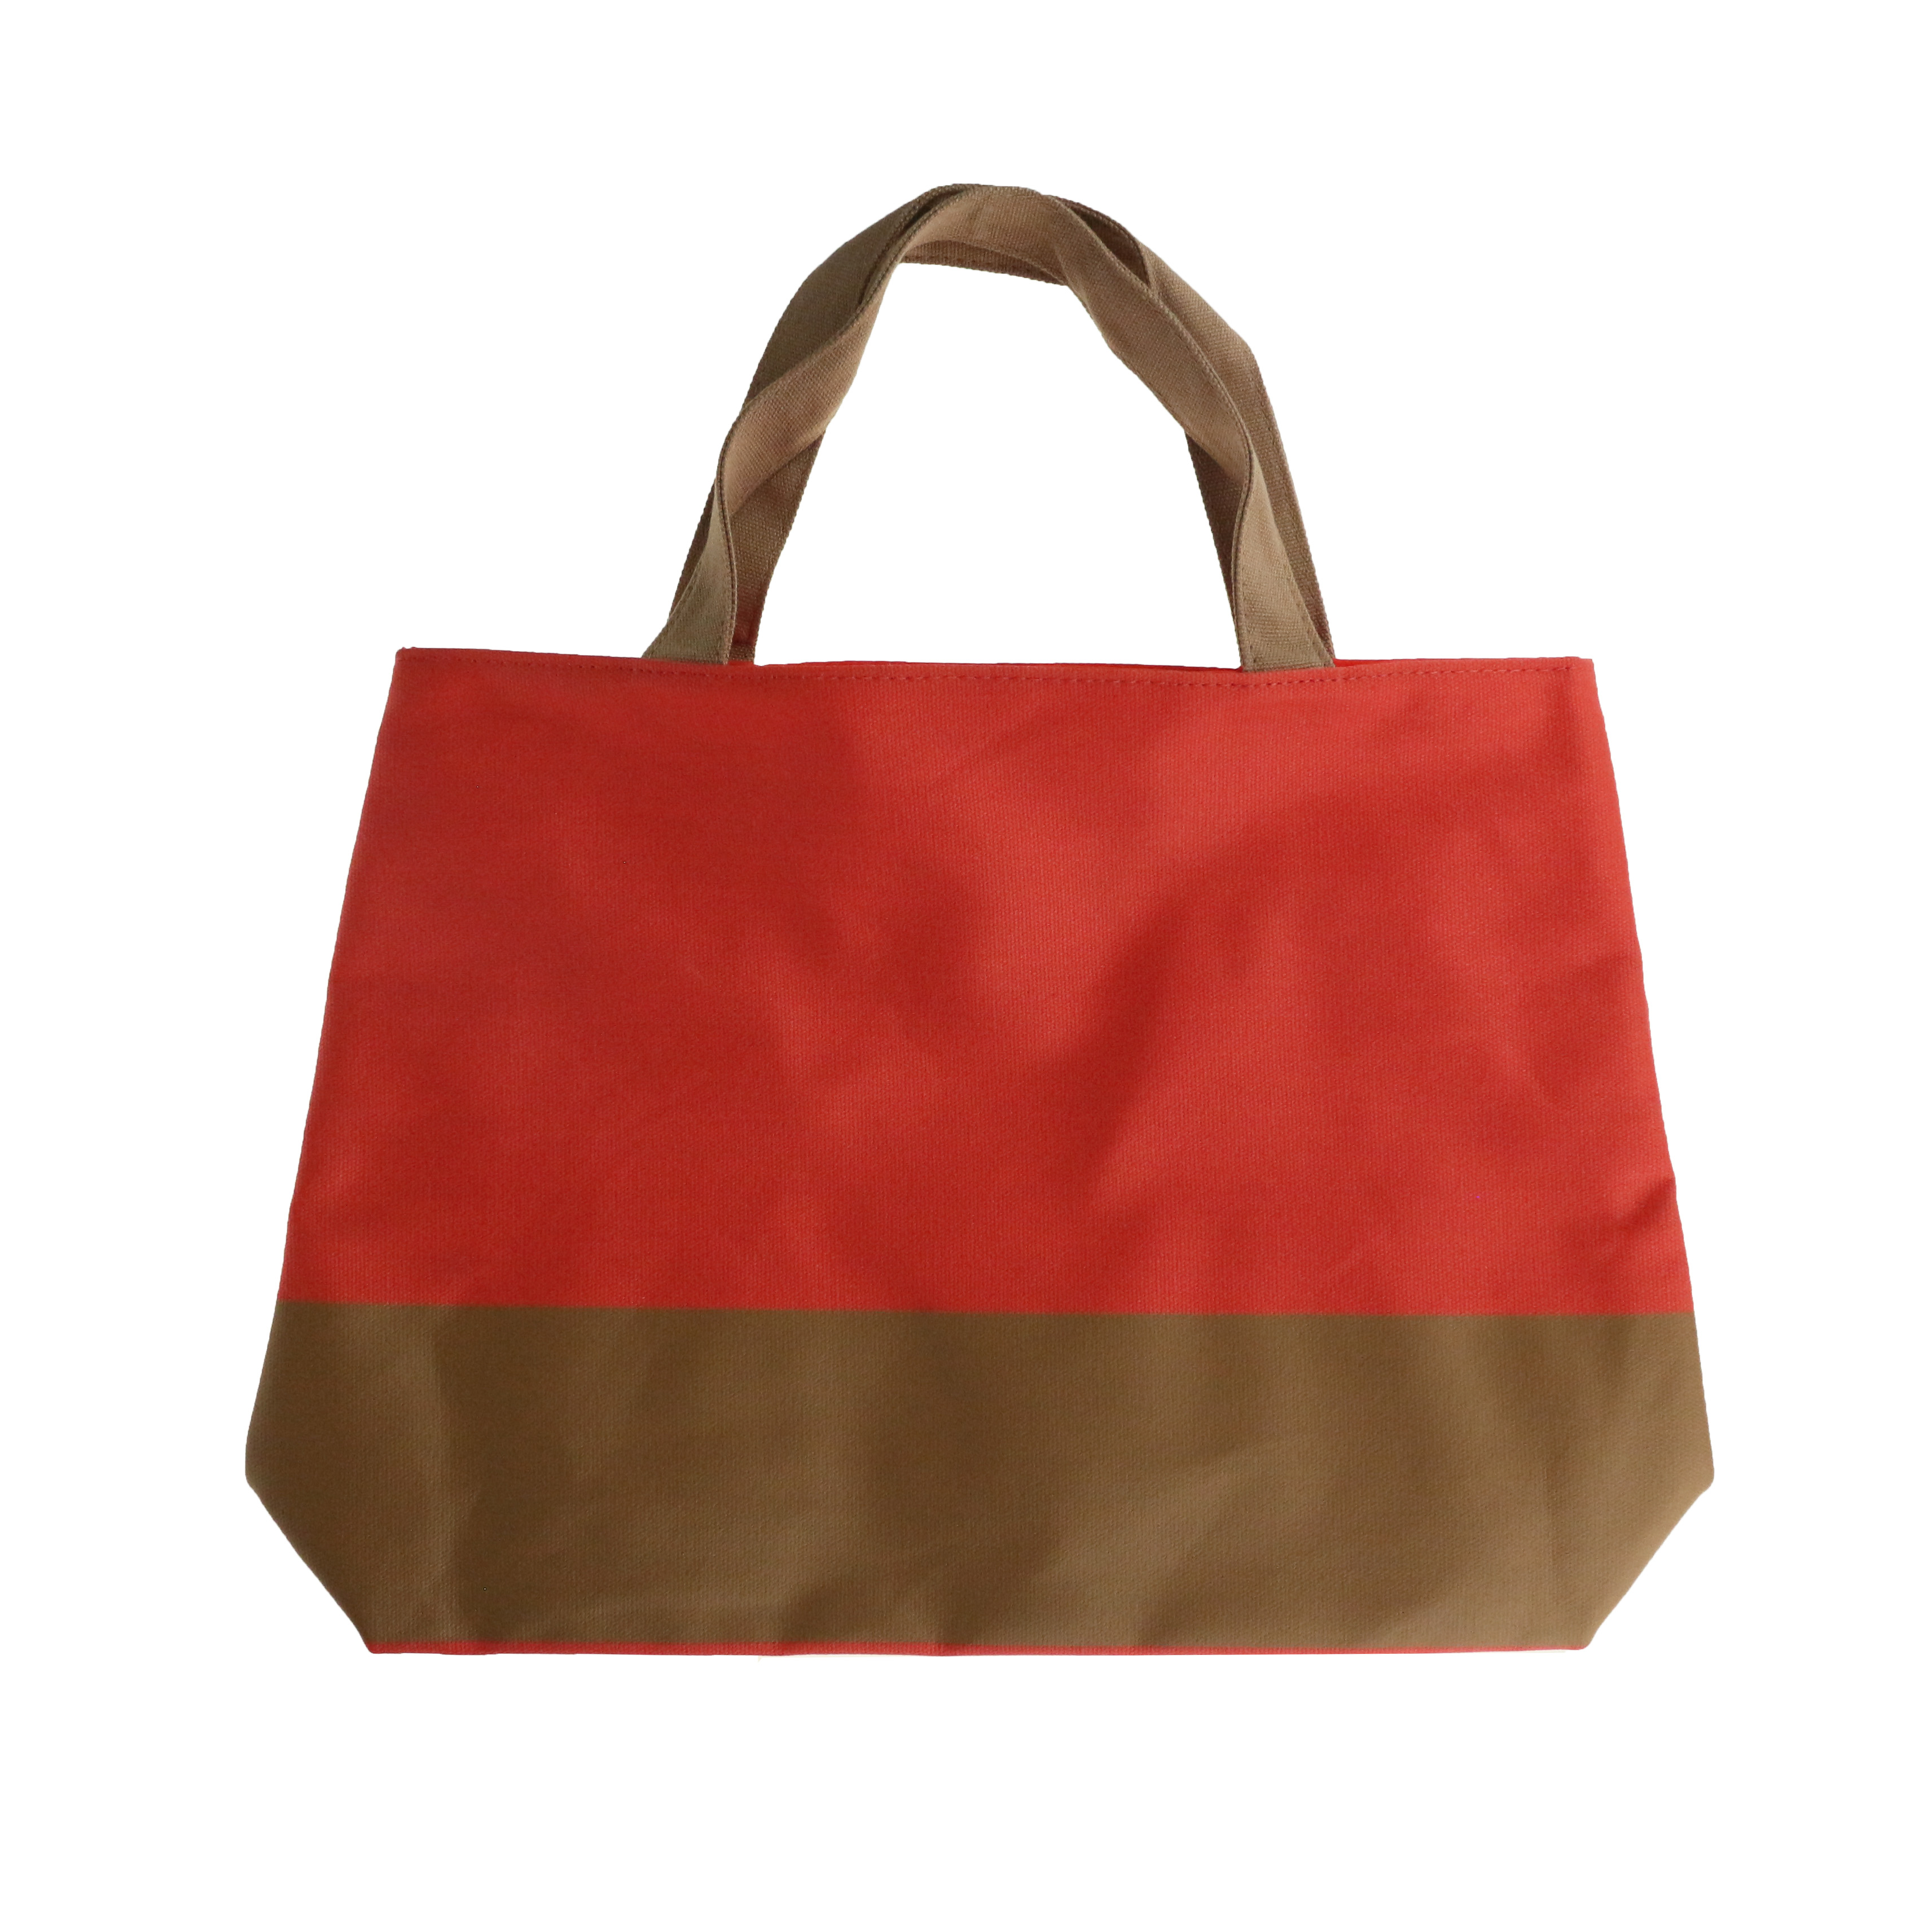 Guerlain Bag New Red Brown Tote 3346476423071Ebay And SUVpzMq